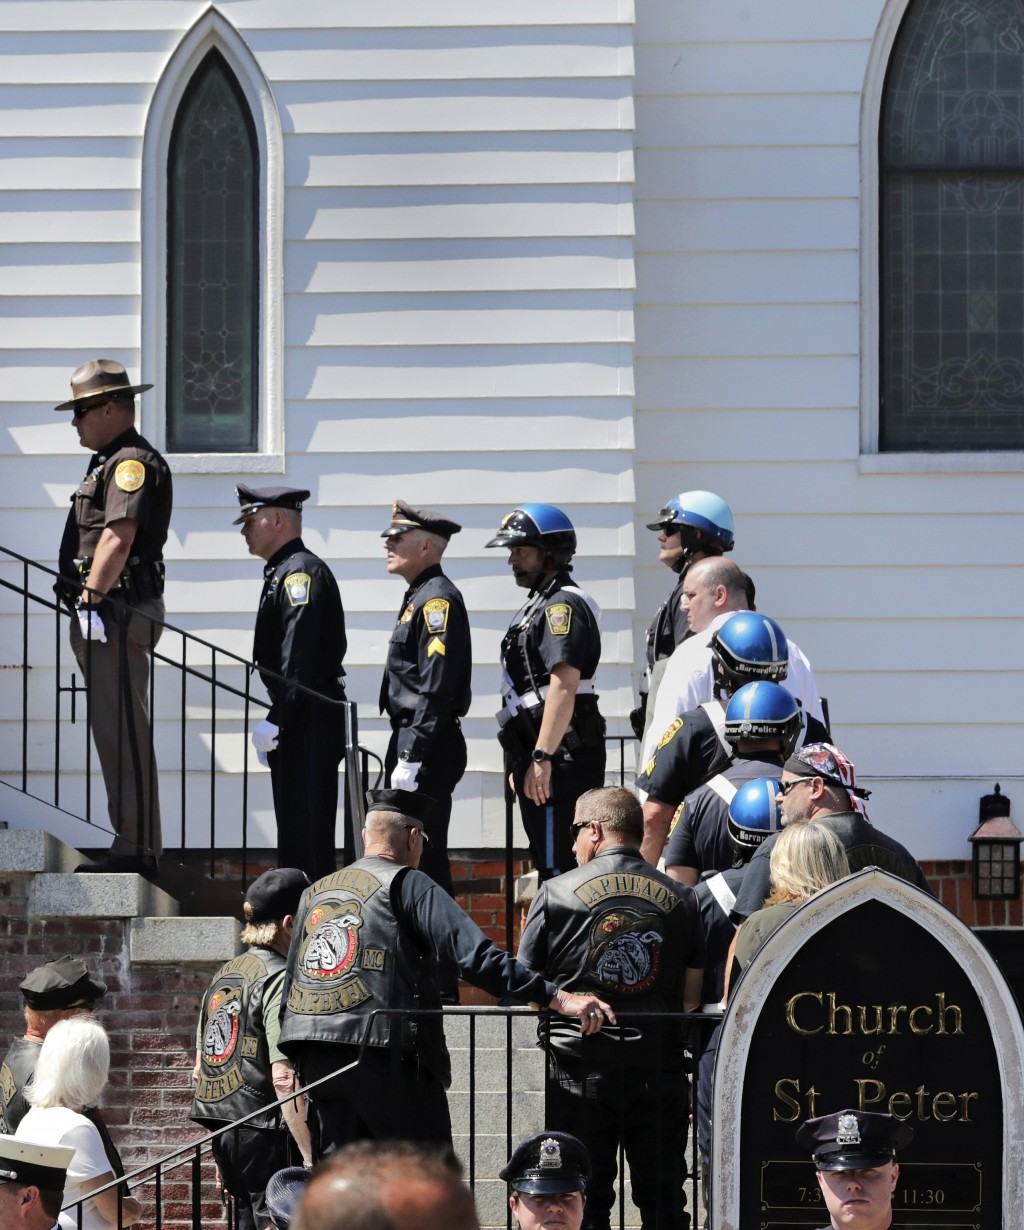 Police officers and members of the Jarheads Motorcycle Club wait in line for the funeral of Michael Ferazzi at St. Peter's Catholic Church in Plymouth...